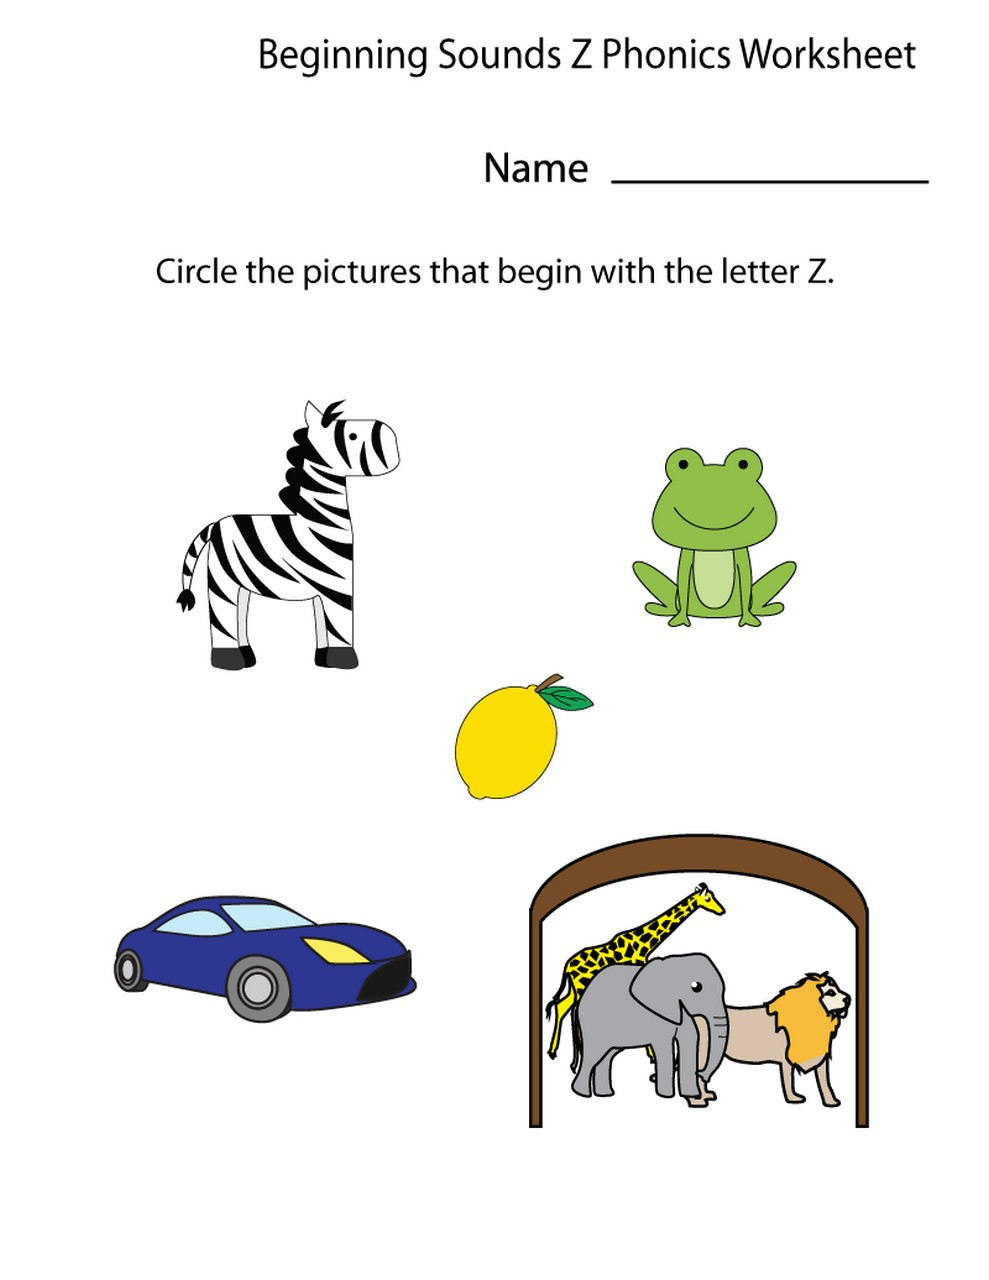 z worksheets printable fun